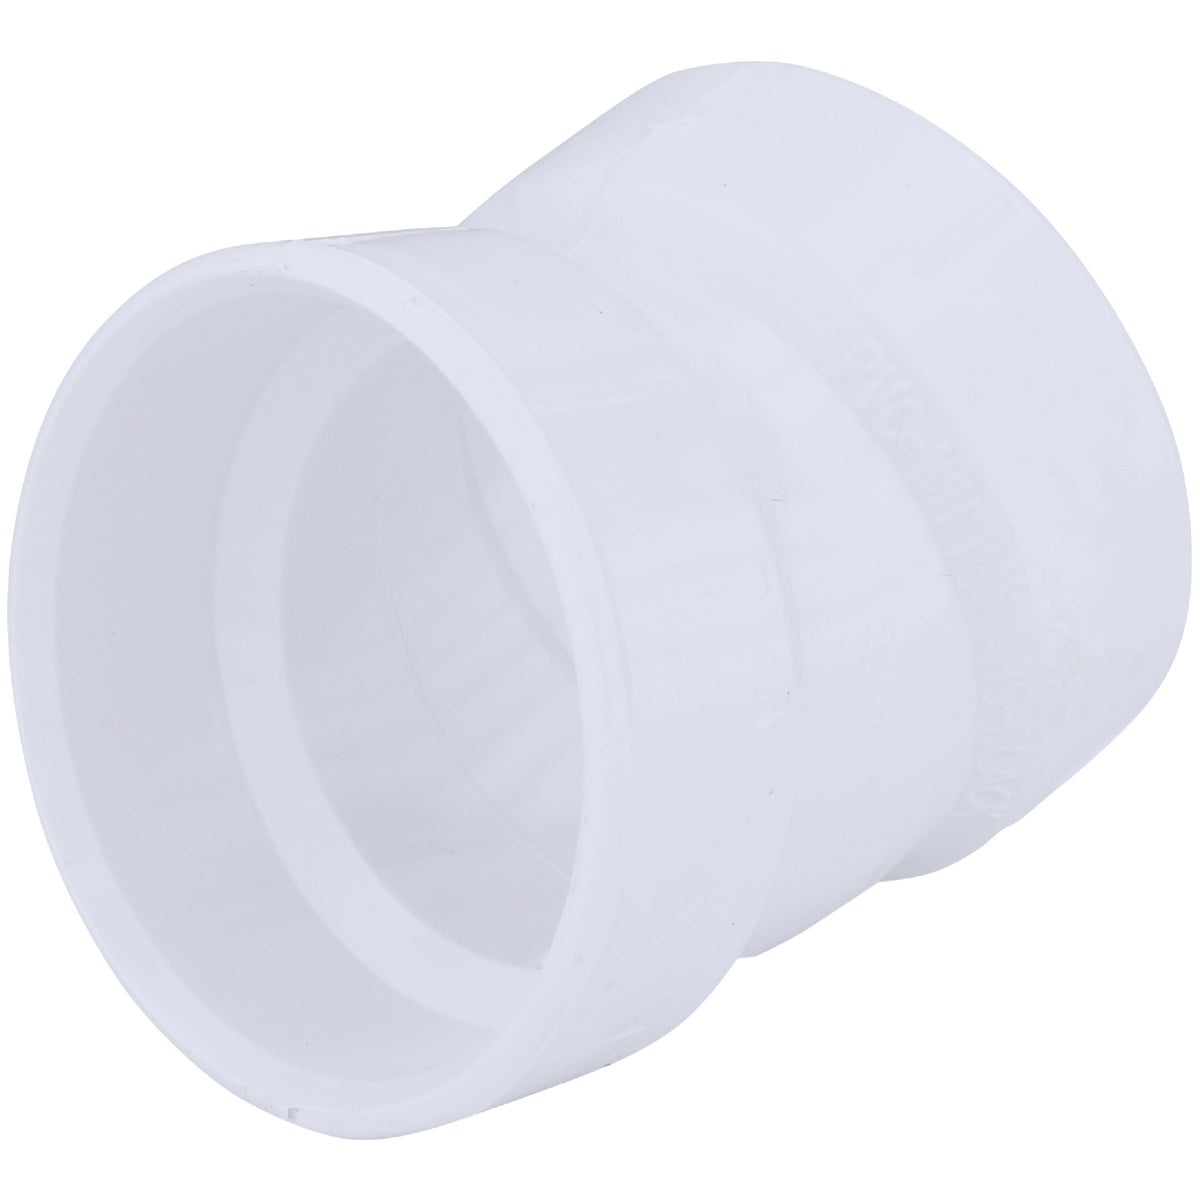 "2"" 22-1/2D PVC-DWV ELBOW - 70820 by Genova Inc  Pvc Dwv"